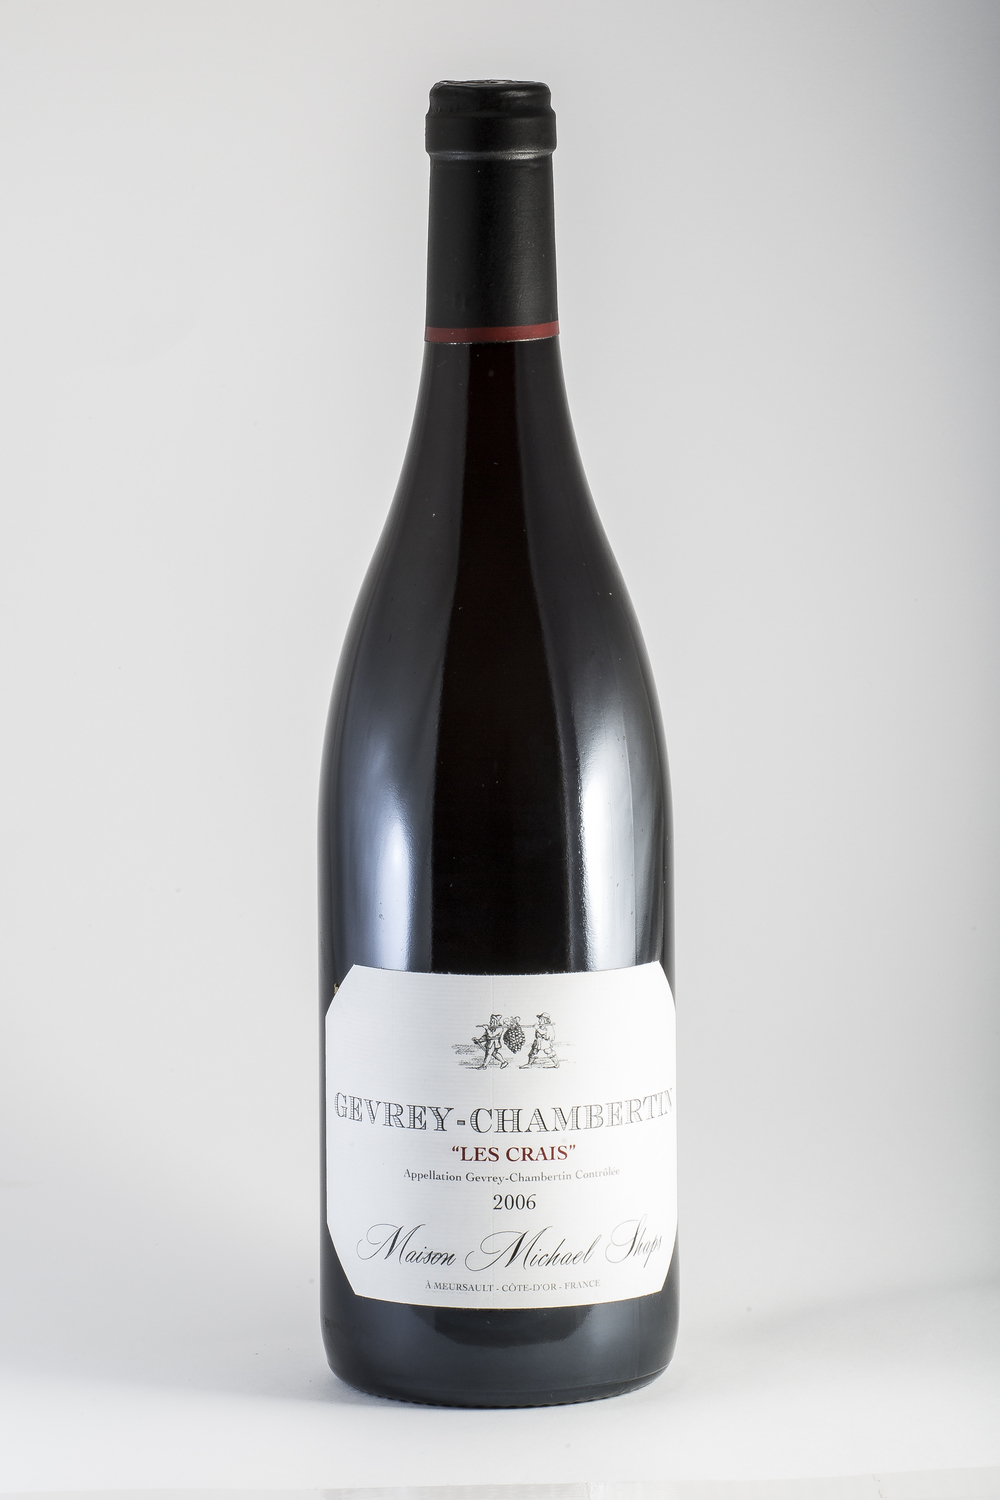 Maison Shaps 2014 Gevrey Chambertin $60 Our vineyard site, Les Crais is situated in the plain just next to the route national. The limestone clay soils and old vines produce a pinot noir that has a unique and distinctive character. This is Burgundian terrior at its best.  This site produces a Pinot Noir with deep earth tones and dark red fruits.  The elegant palate structure is highlighted by soft tannins that allow the elegance to prevail over time.